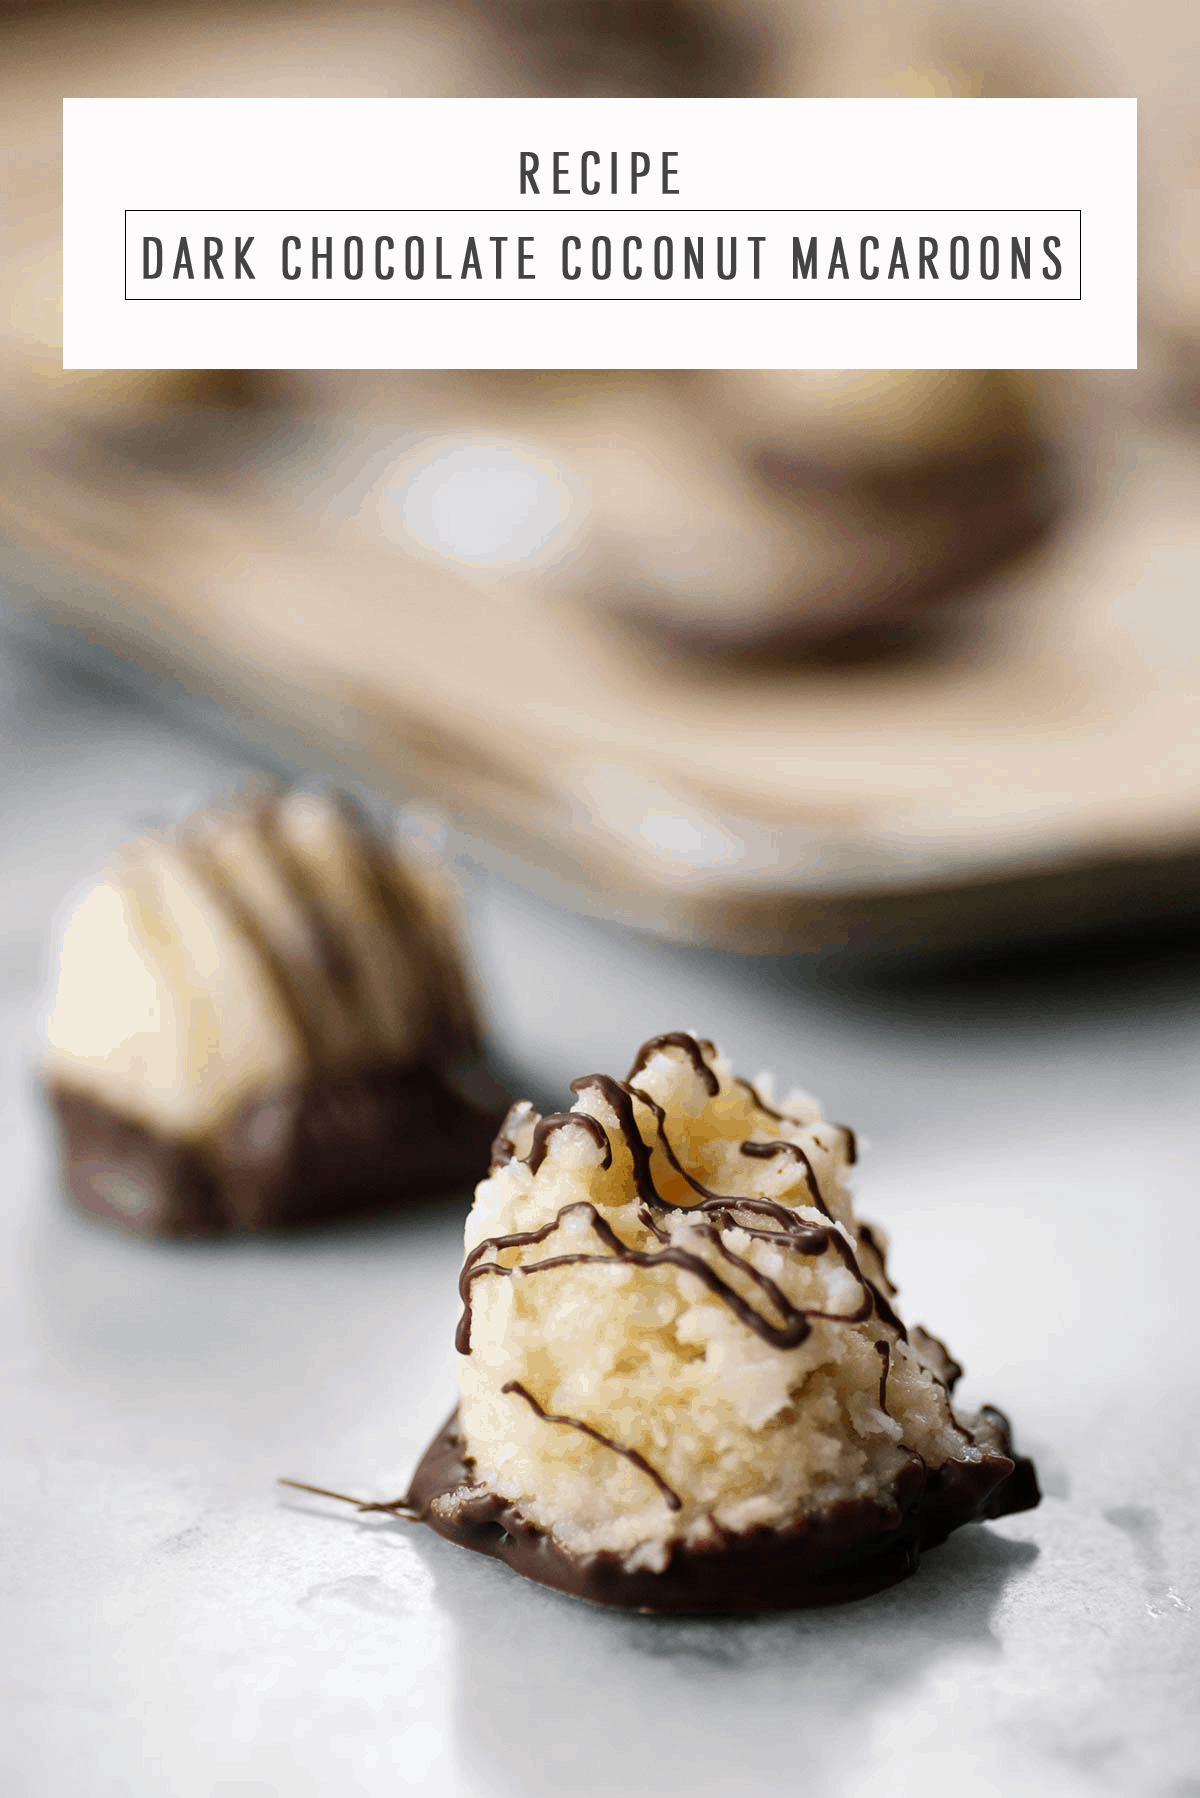 Dark Chocolate Coconut Macaroons recipe by Sugar & Cloth, an award winning DIY and lifestyle blog.